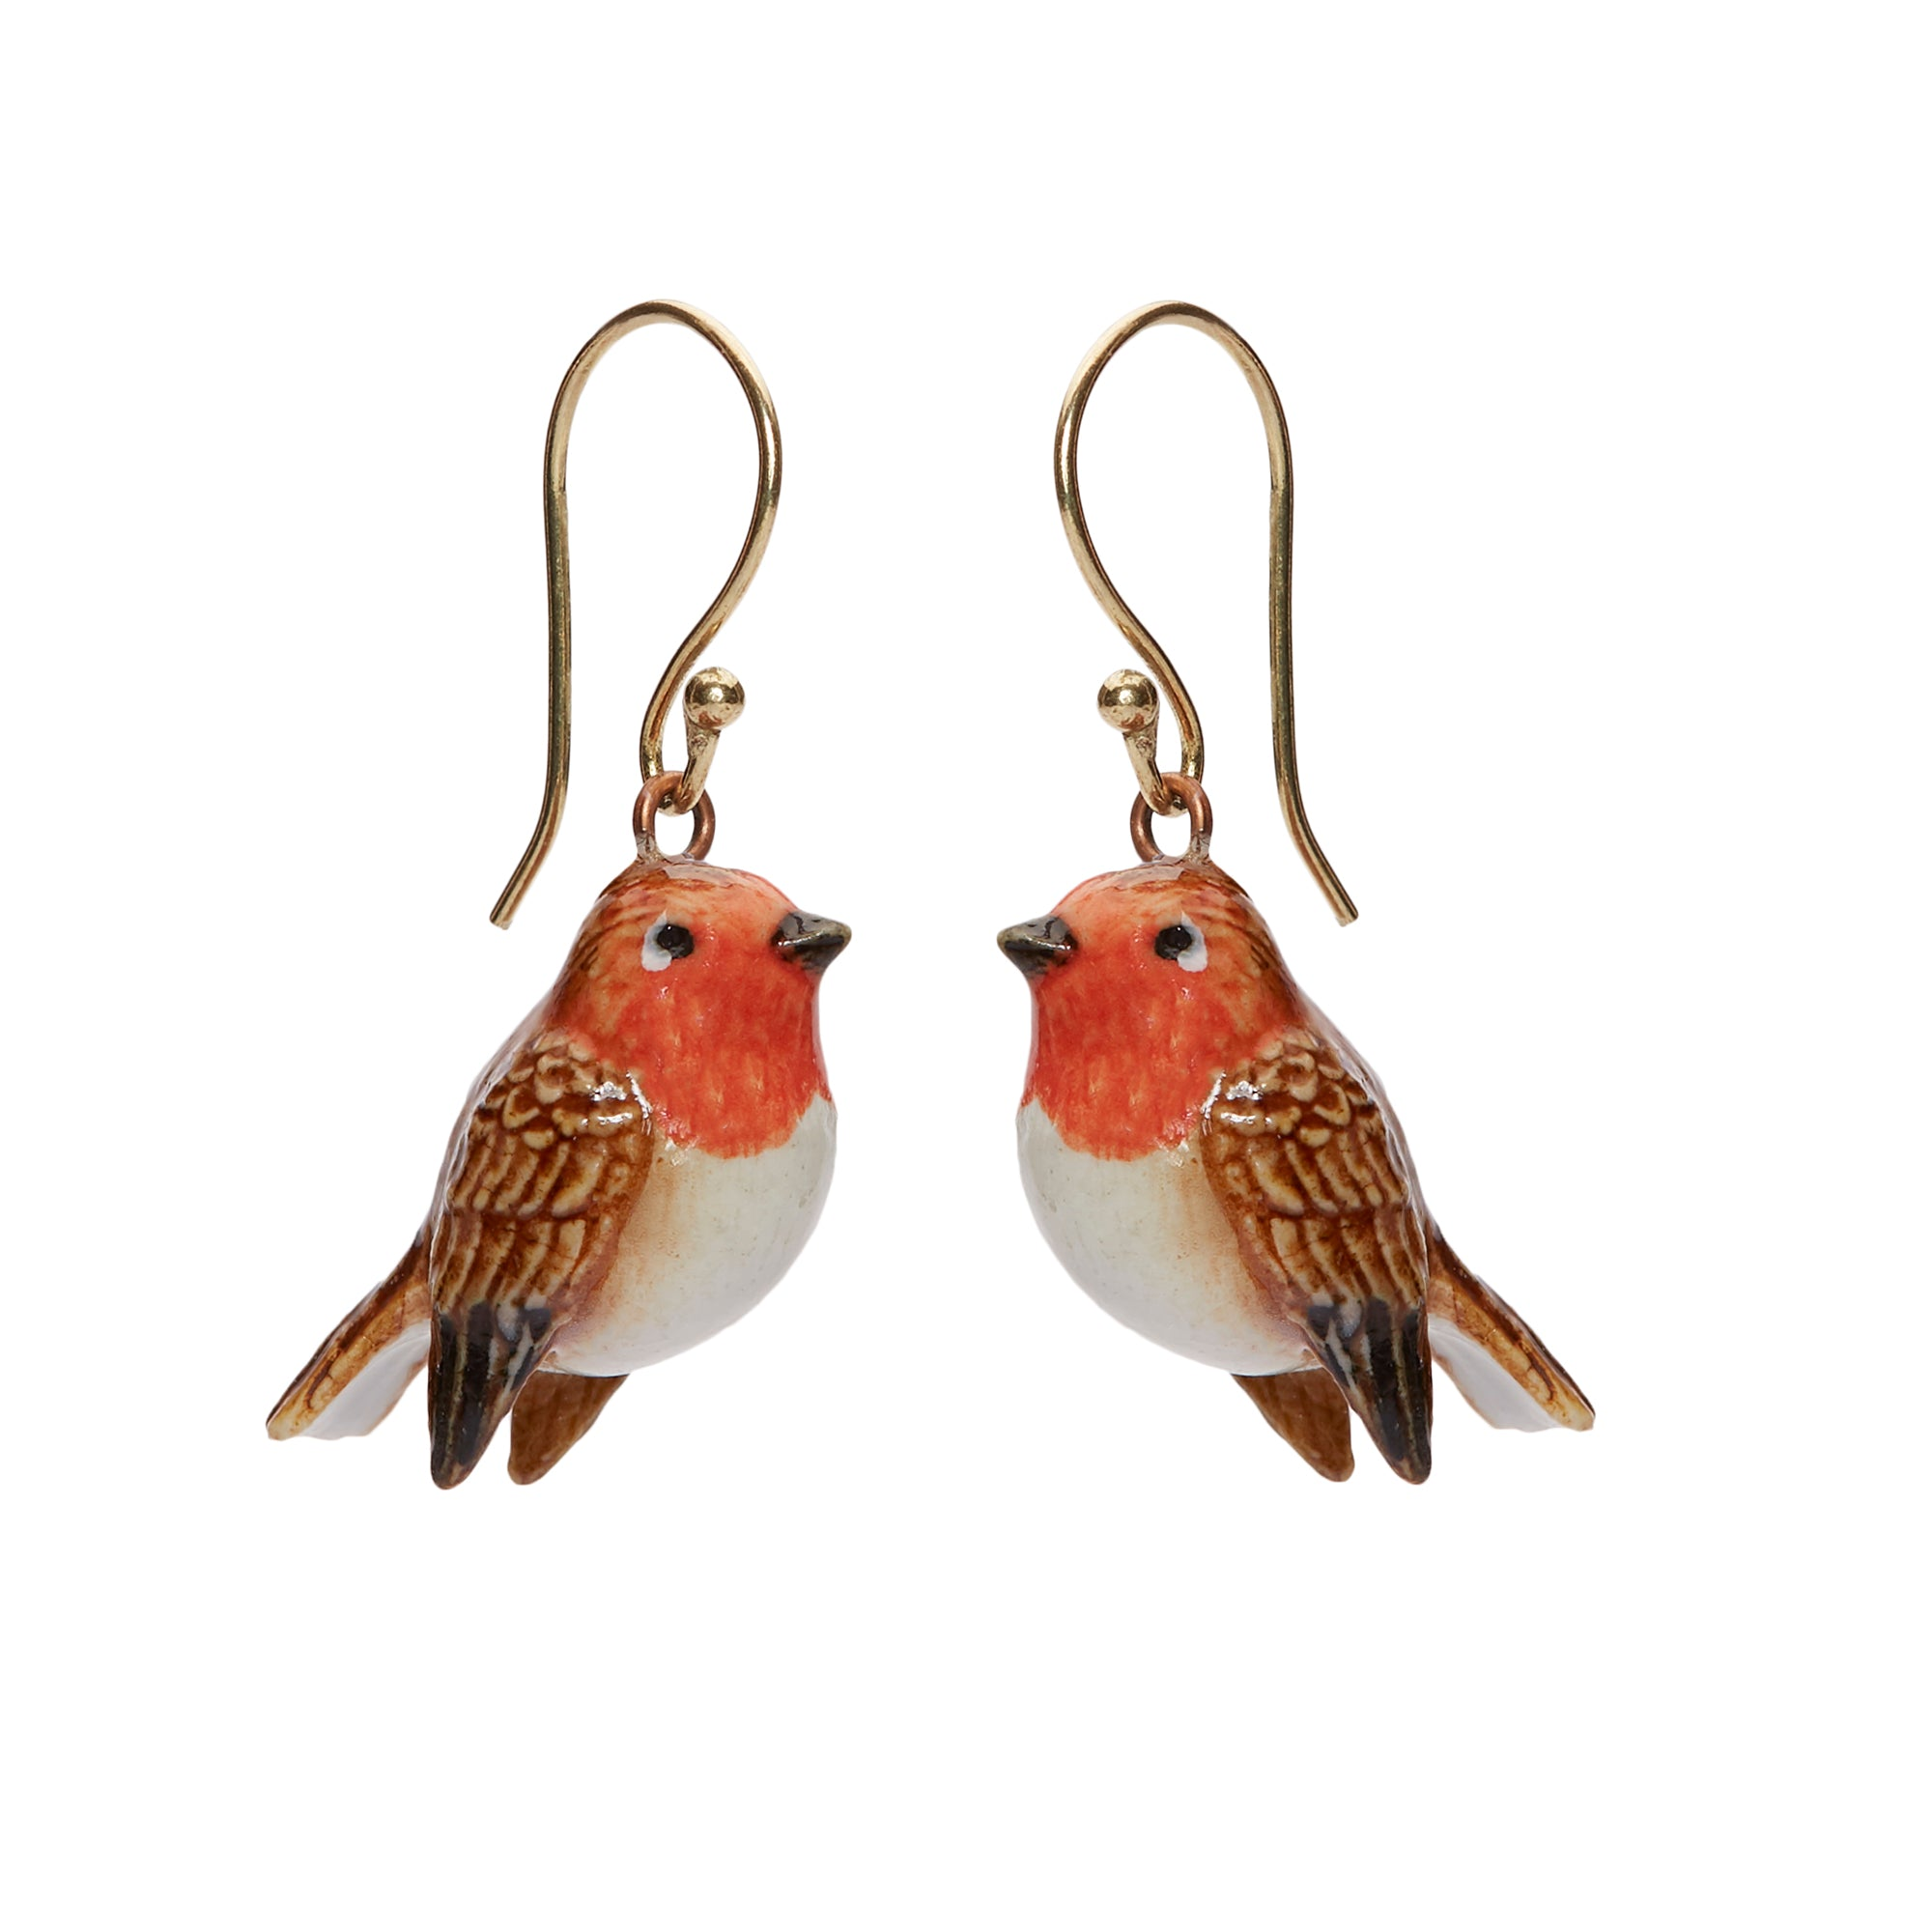 Tiny Robin Earrings